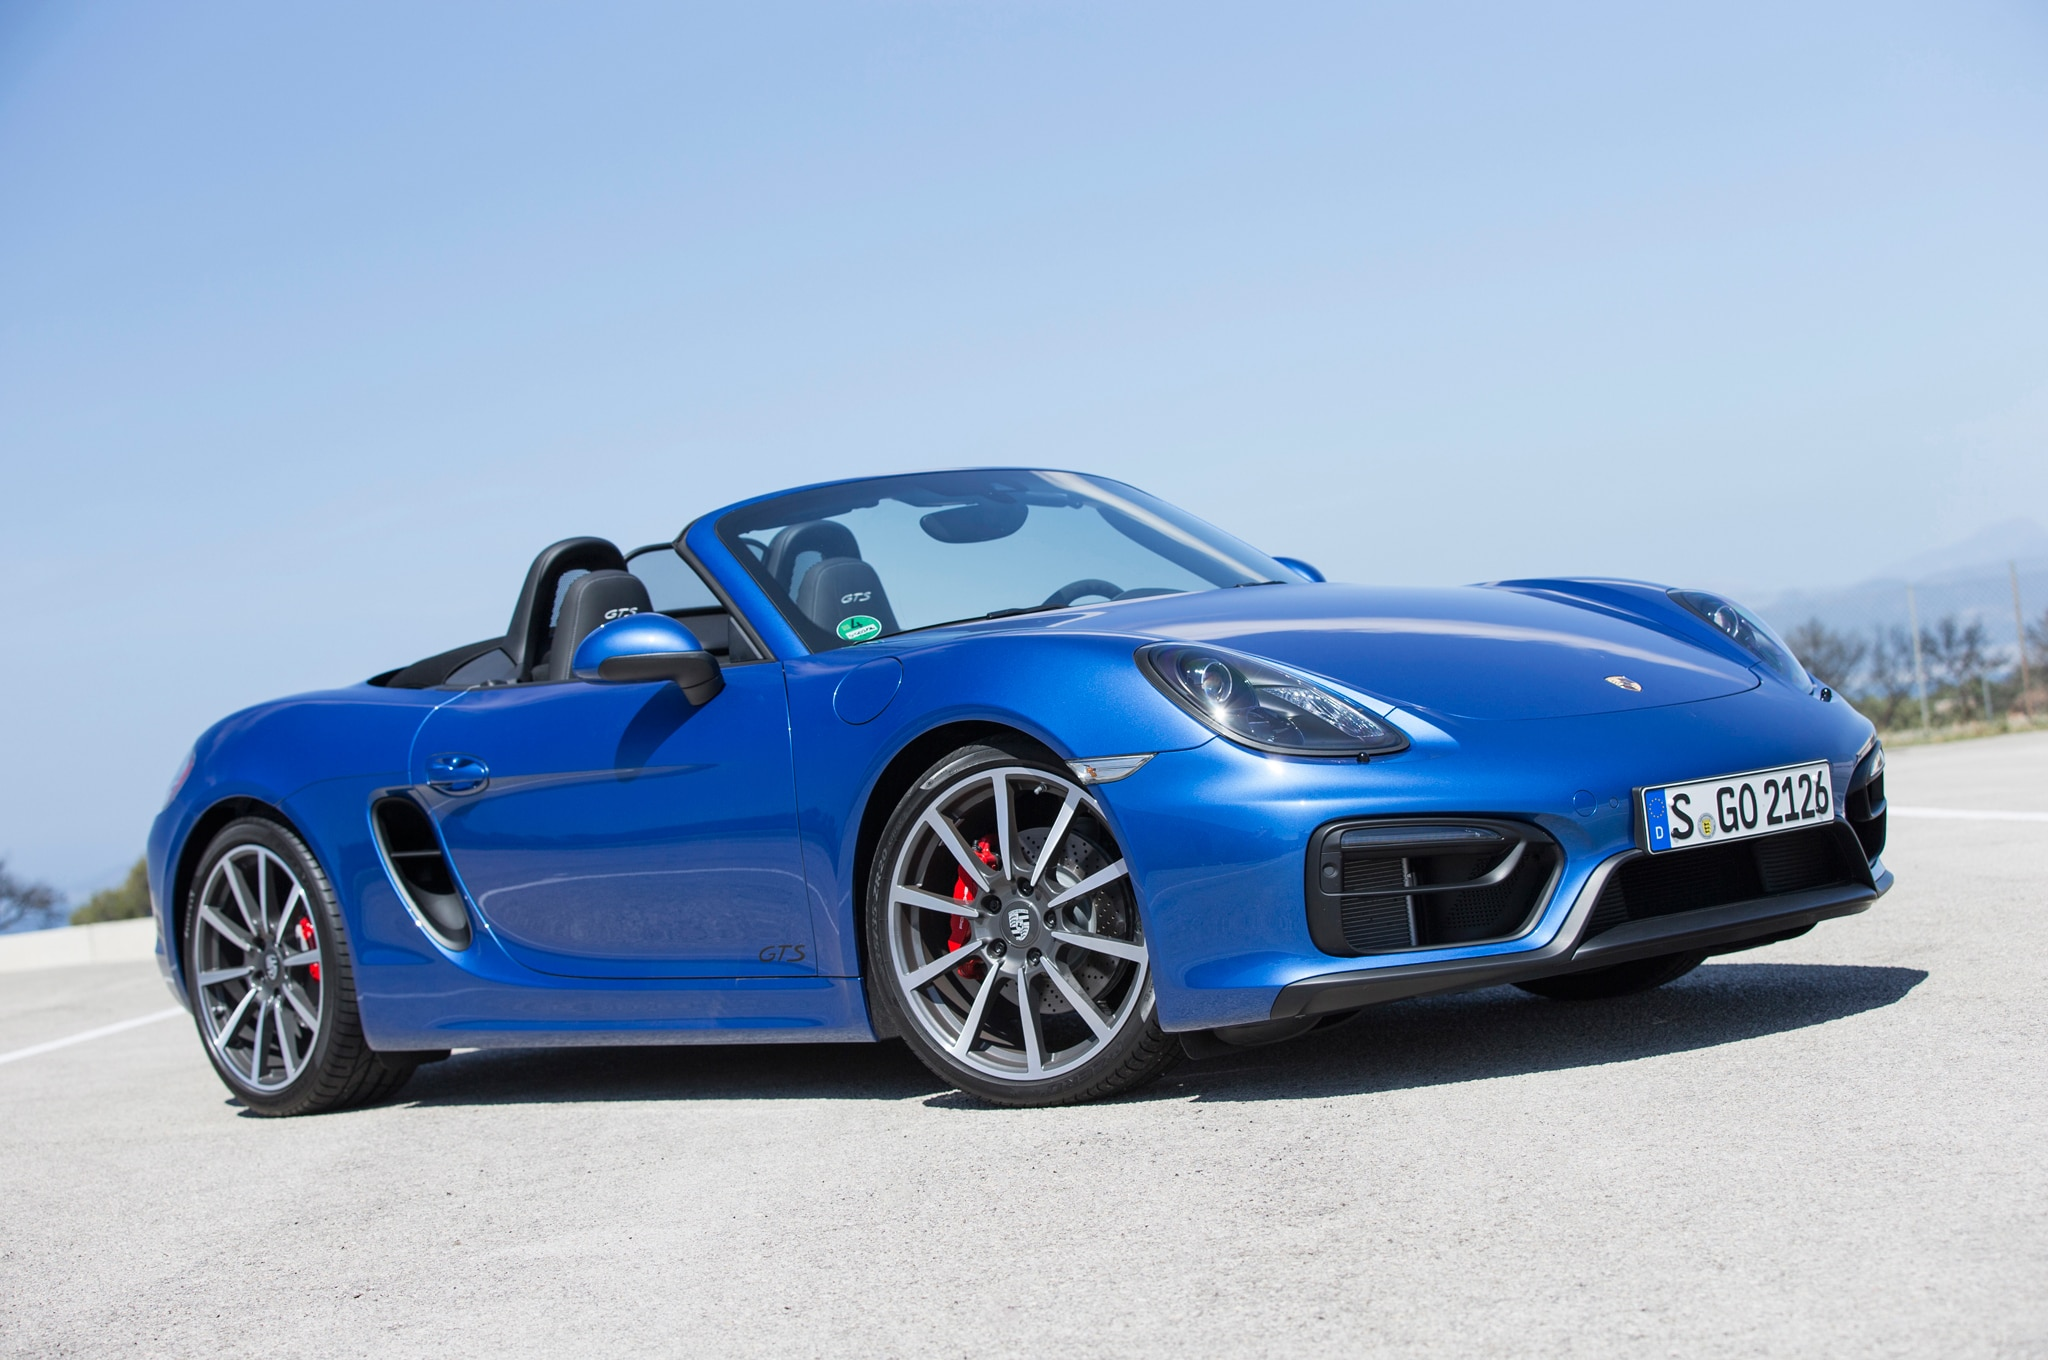 the gts label has a noteworthy history at porsche